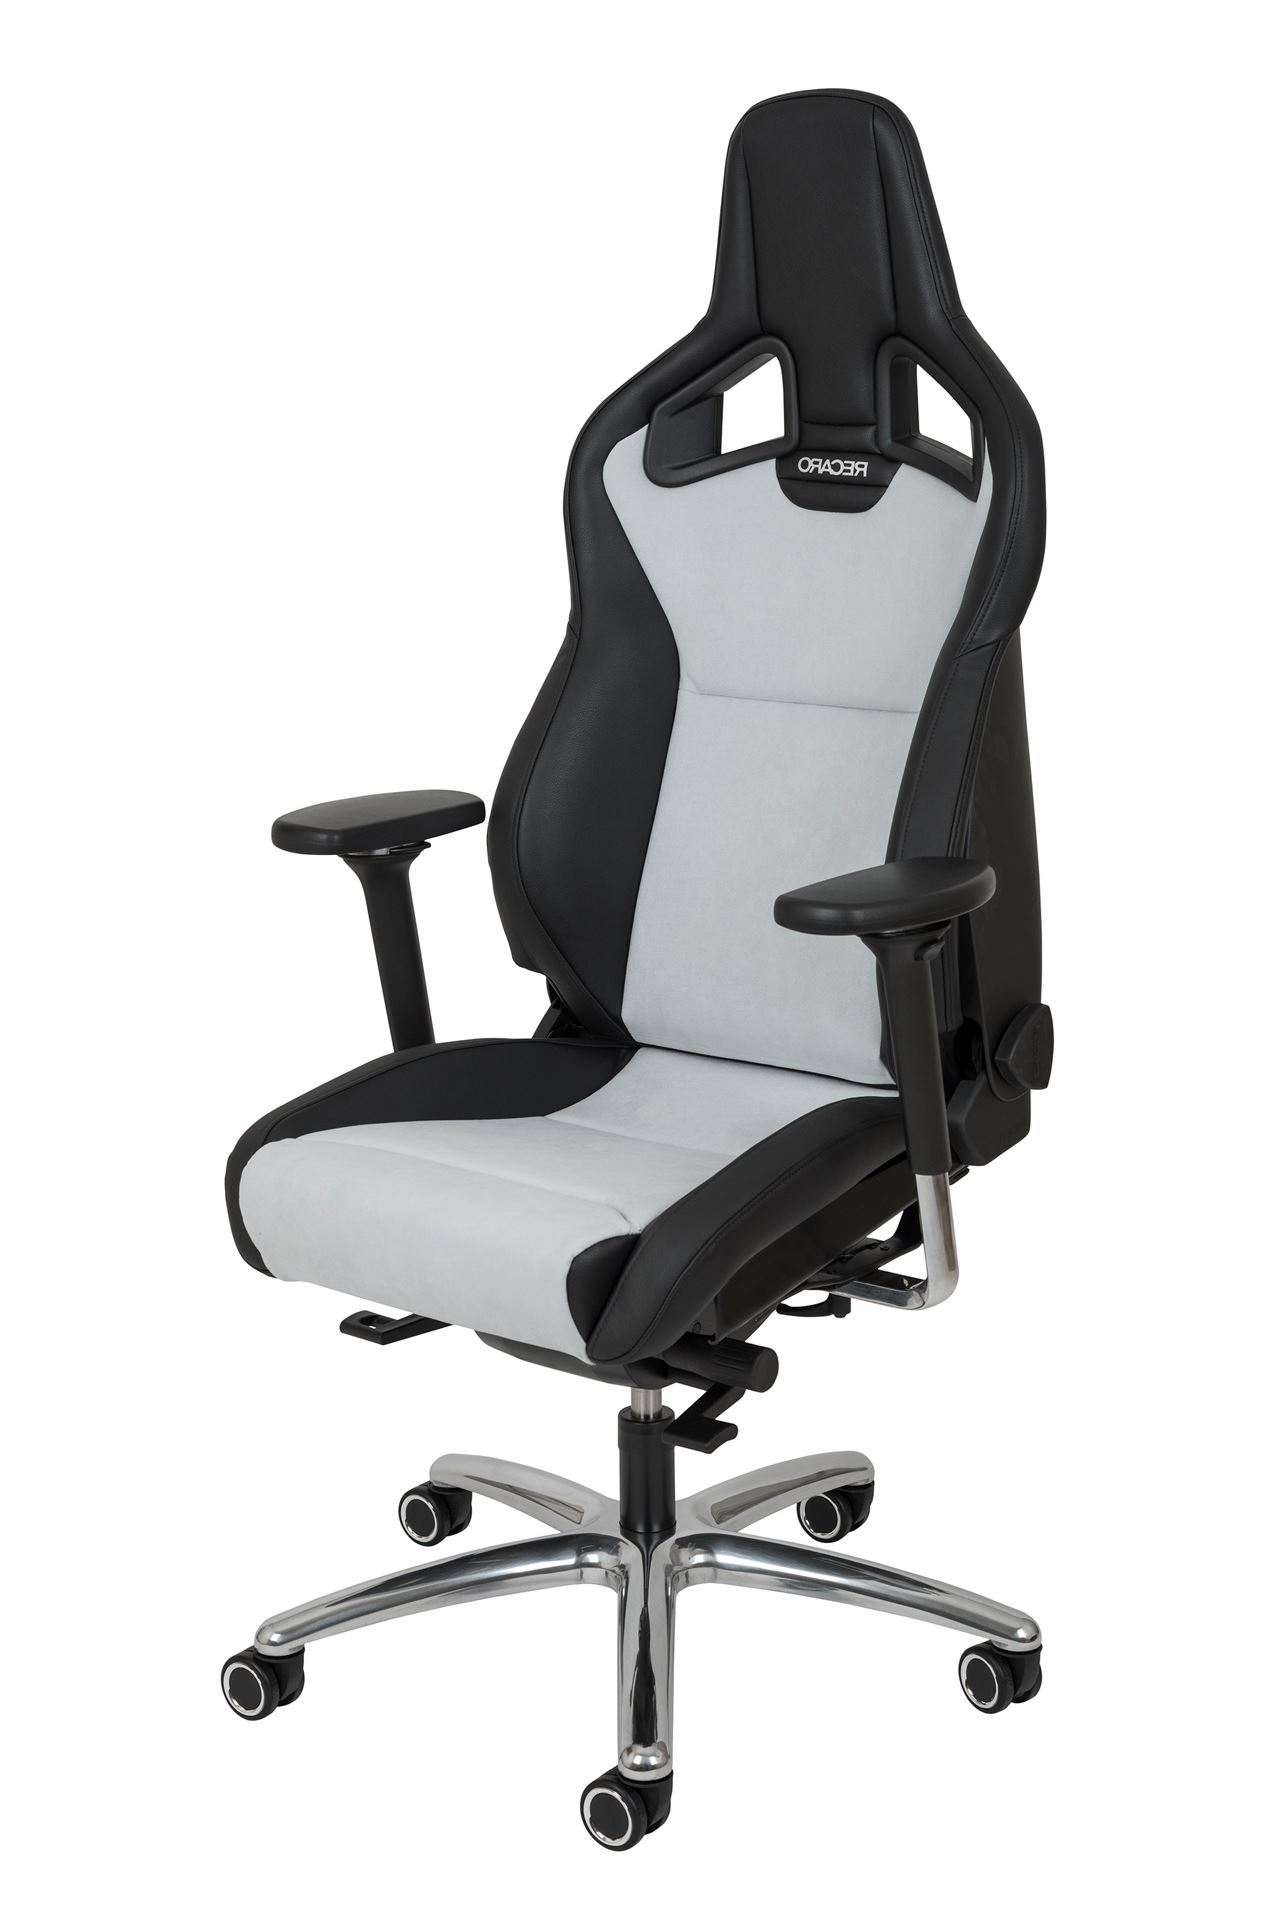 recaro office chair uk linen covers capital seating and vision accessories for picture of cross sportster cs